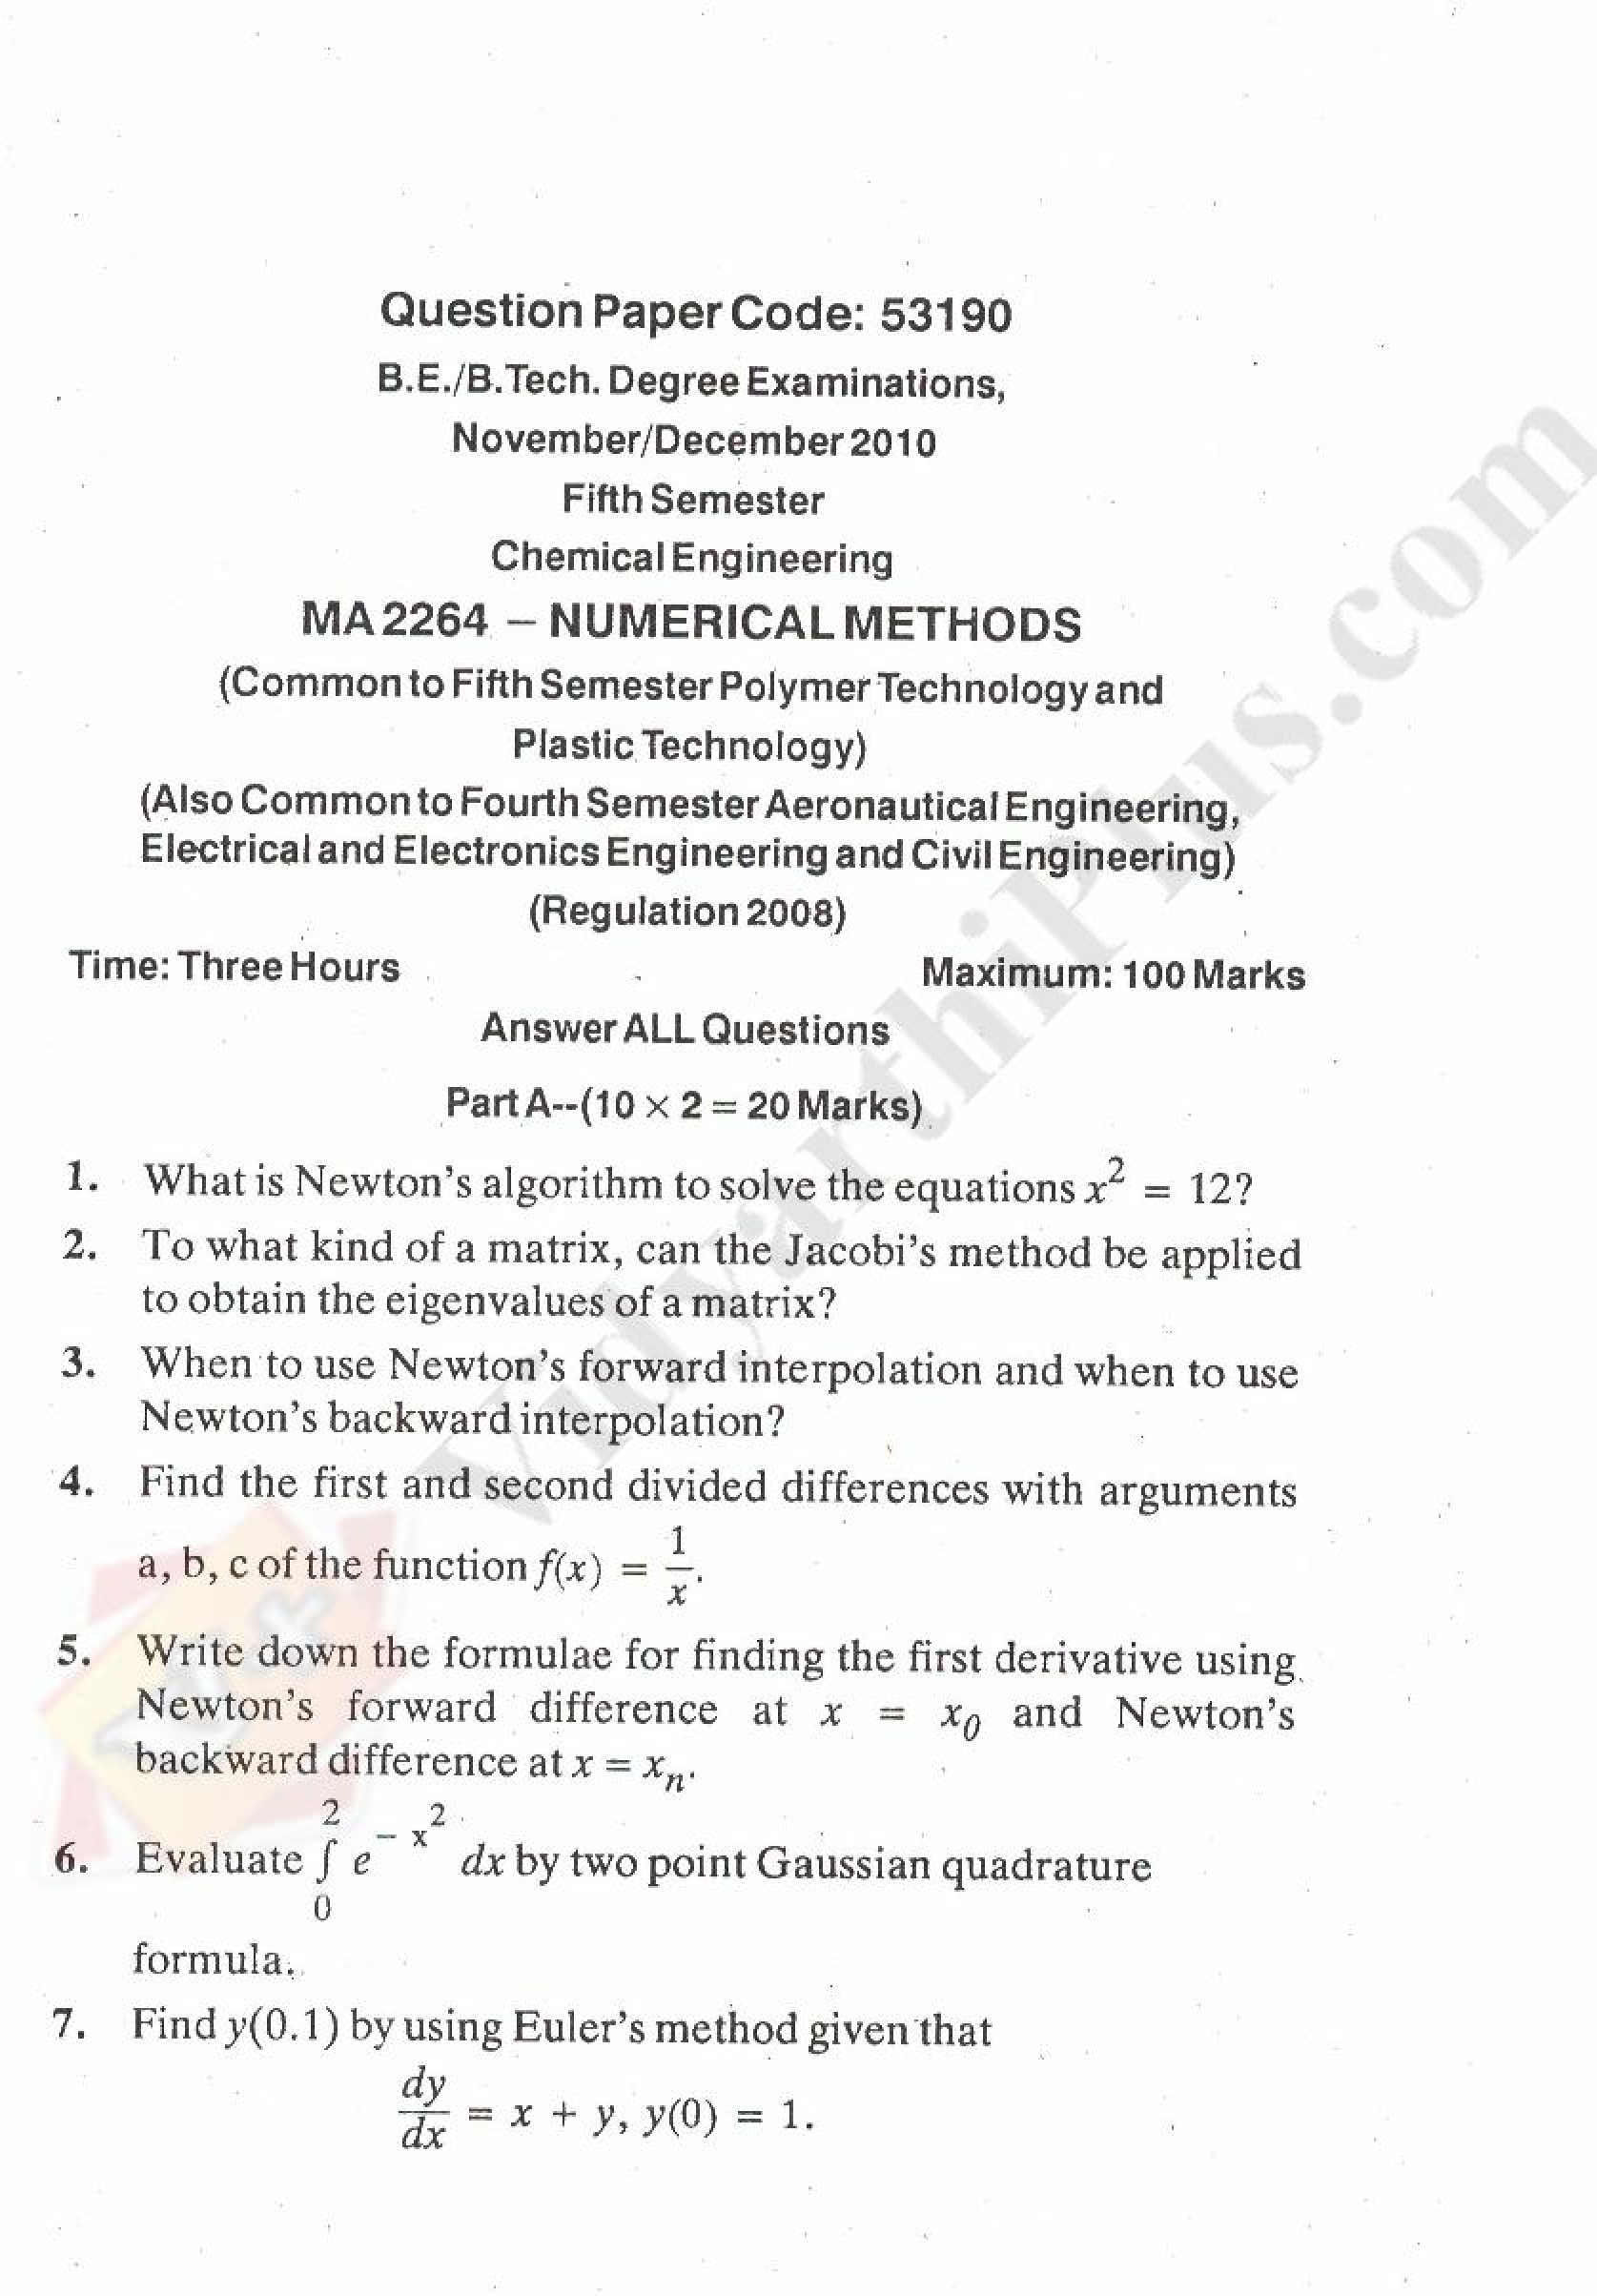 Numerical Methods Solved Question Papers - 2015 Edition